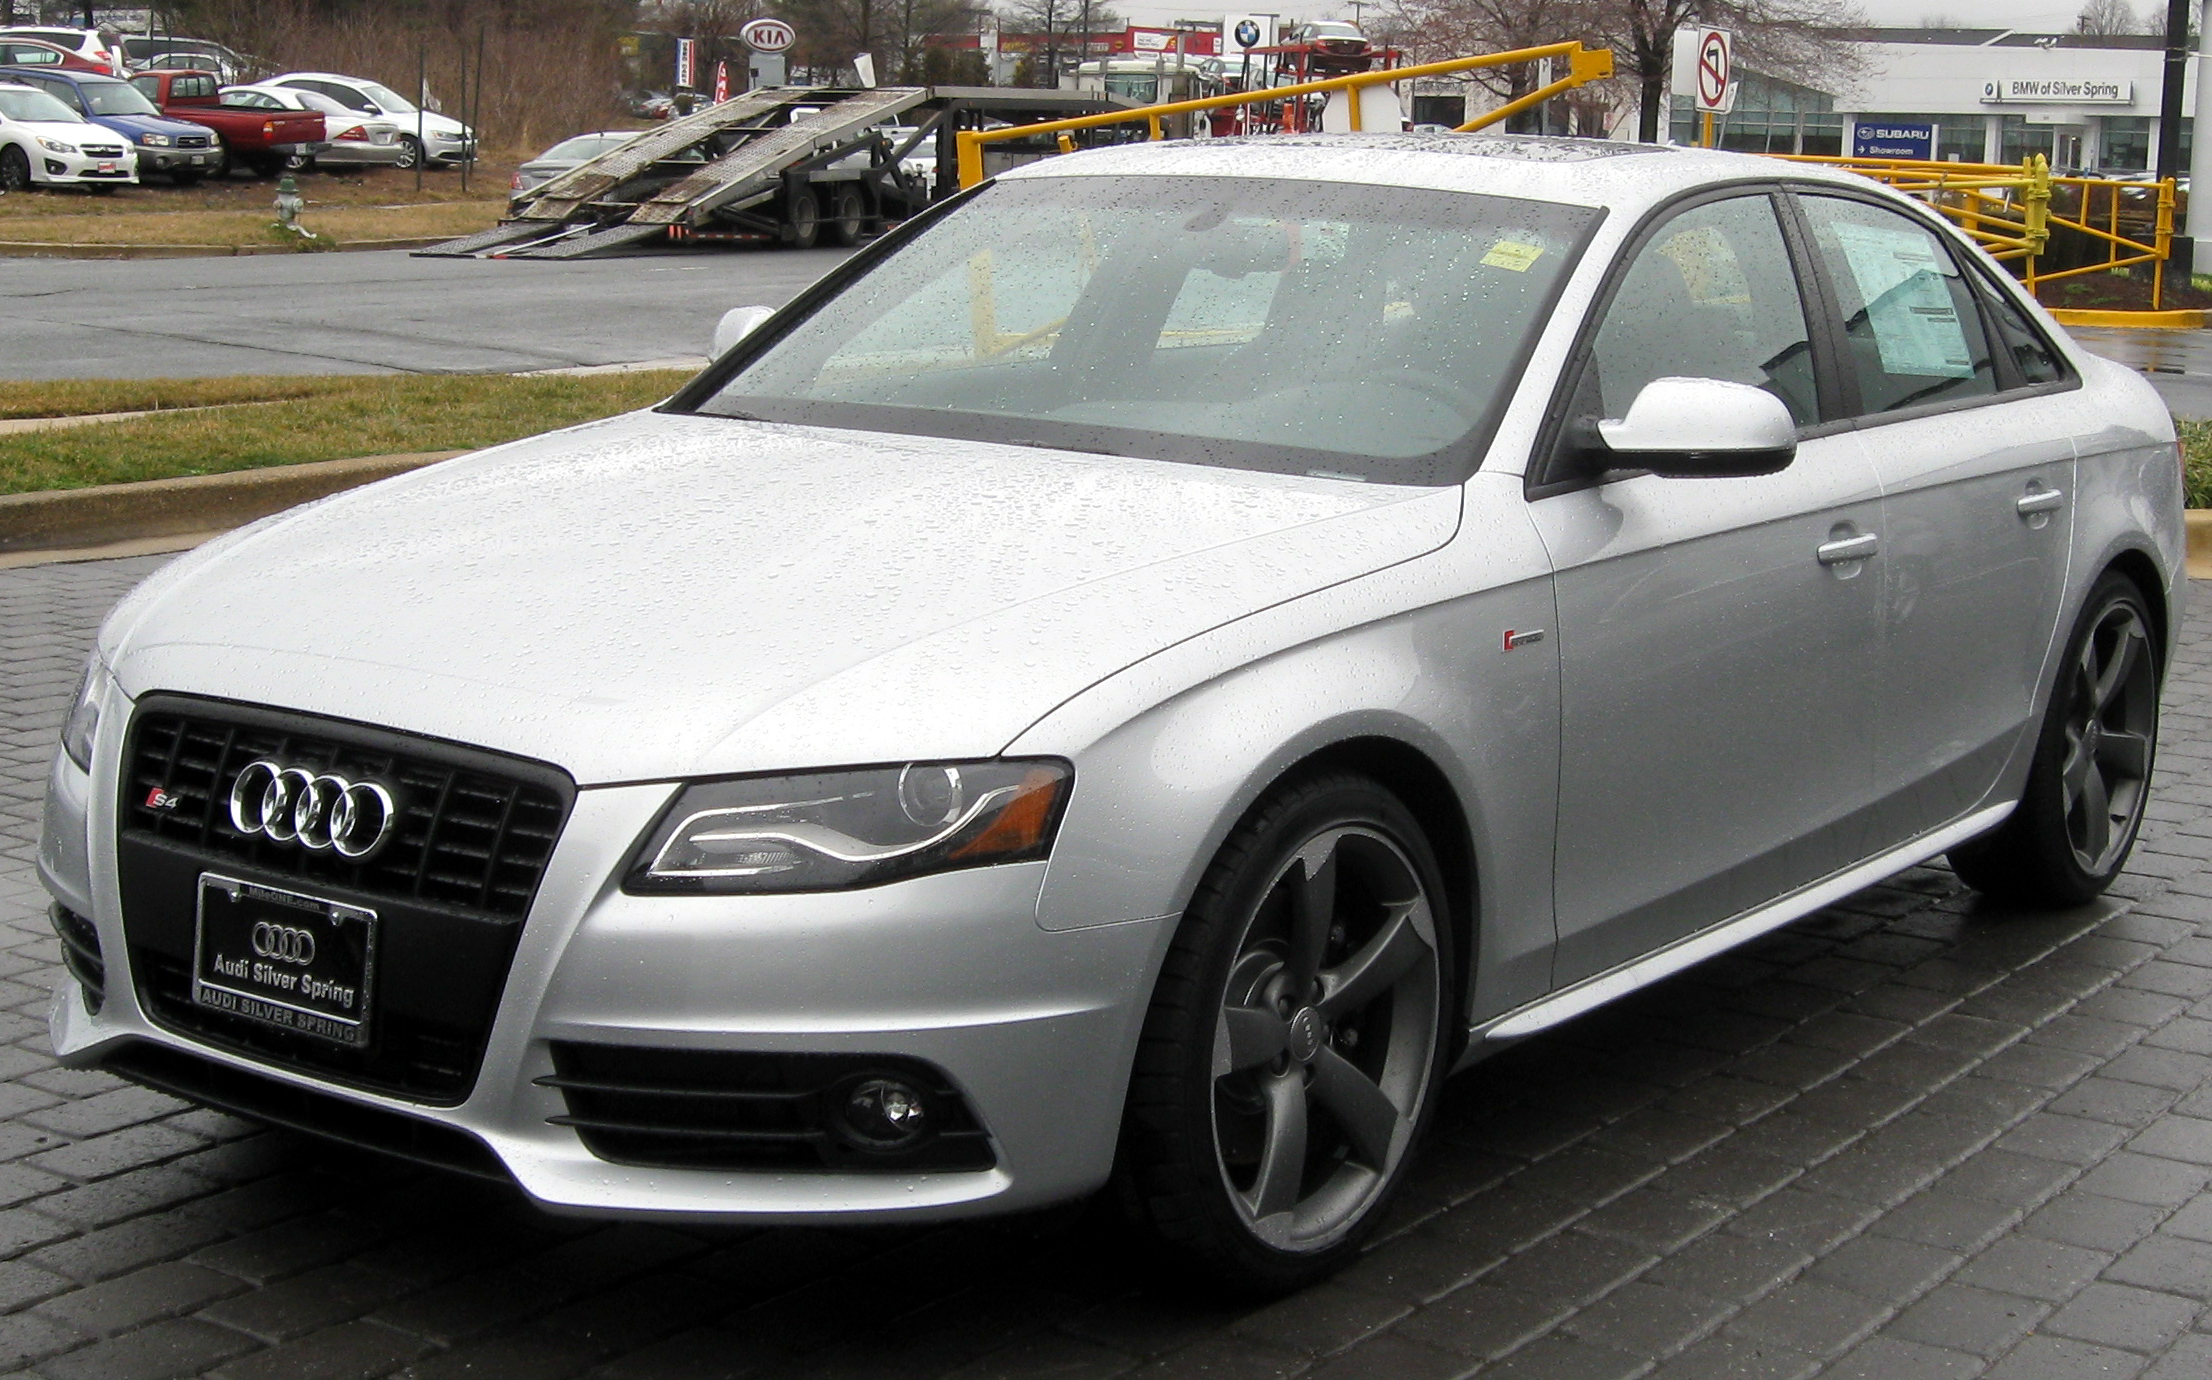 File 2012 Audi S4 02 29 2012 Jpg Wikimedia Commons